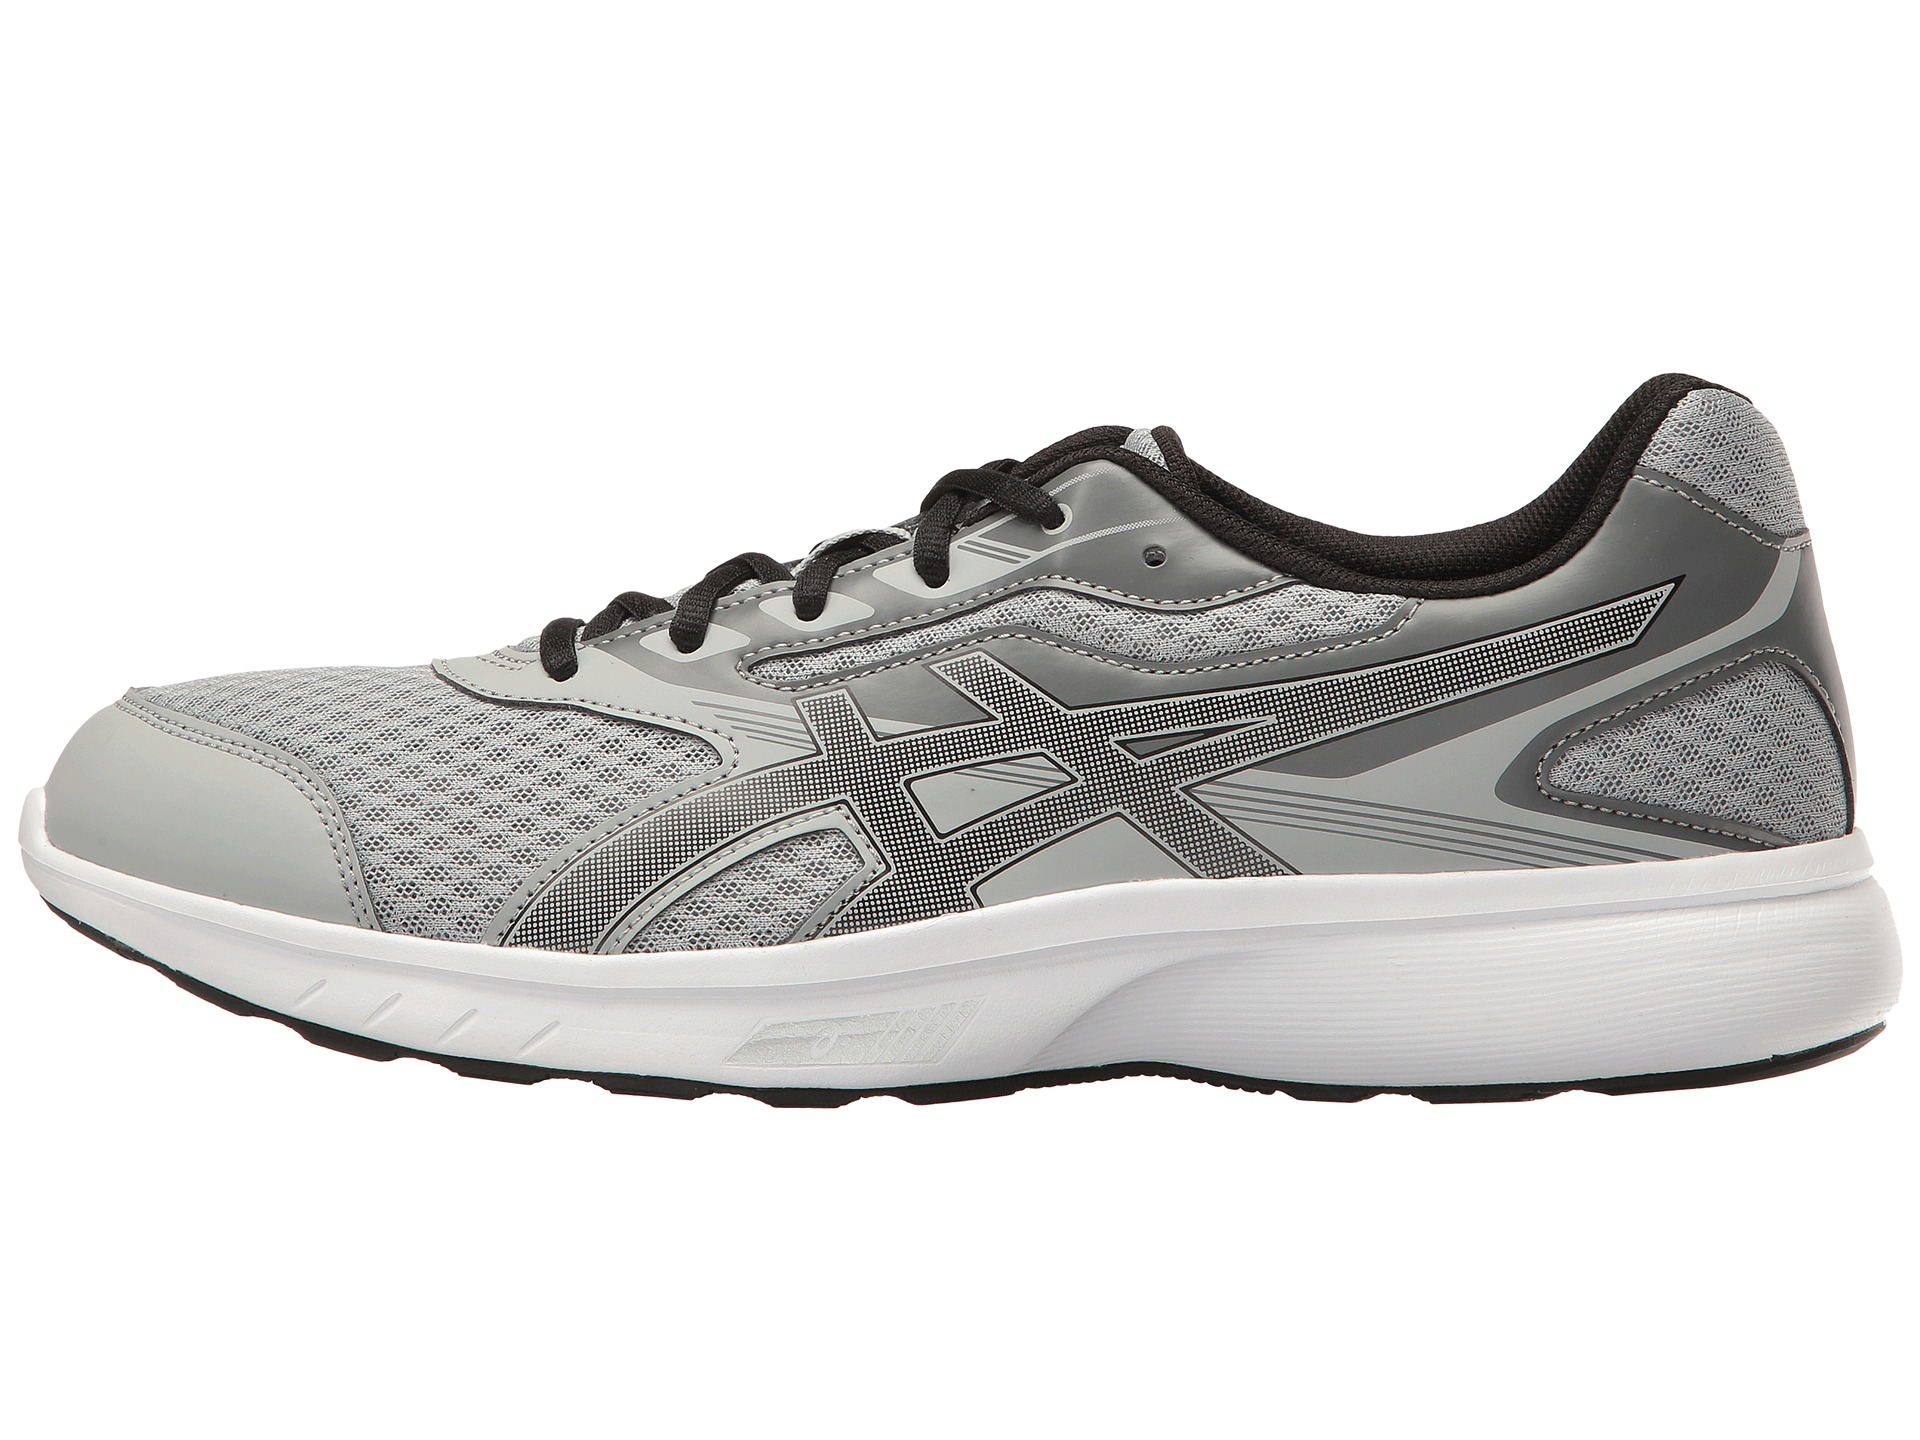 ASICS-Men-039-s-Stormer-Running-Shoes-T741S